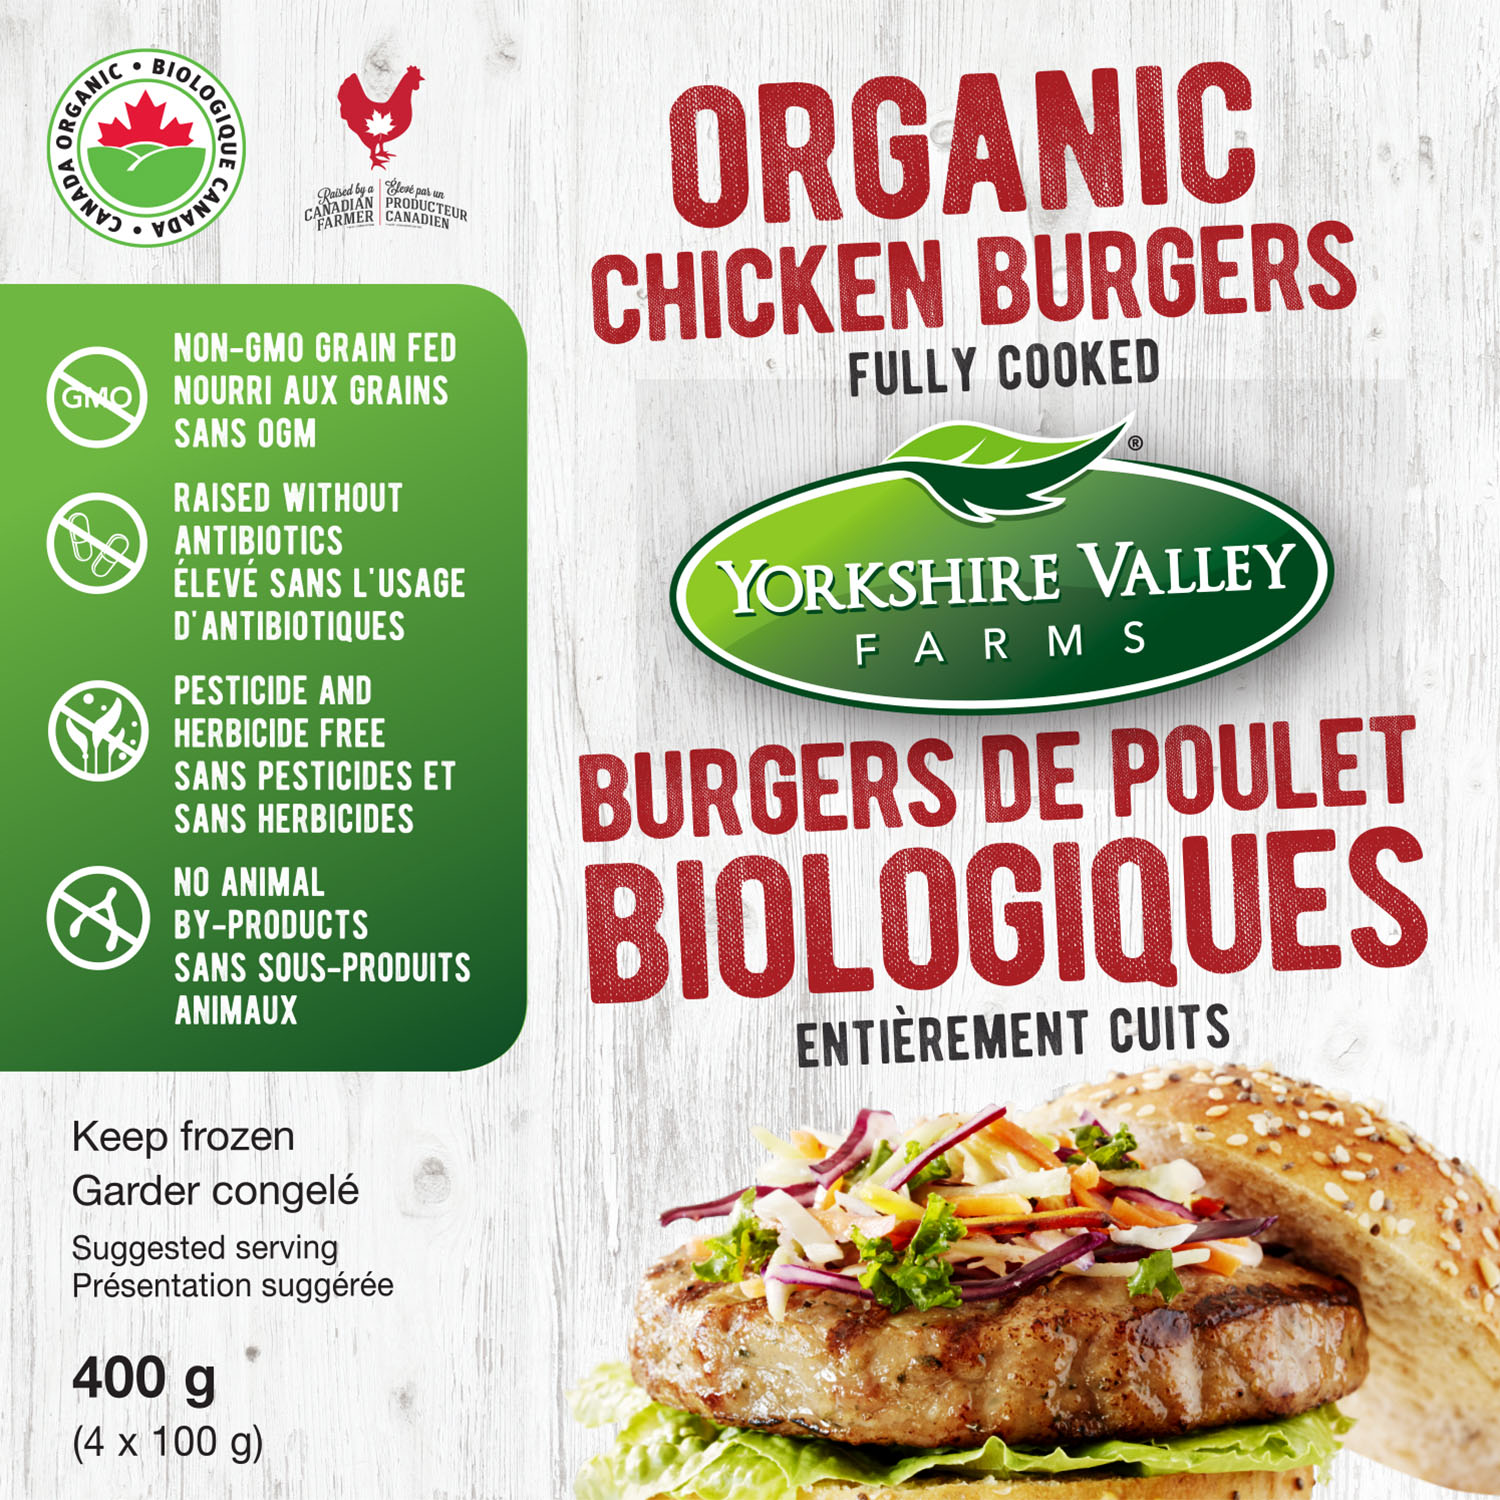 YVF17004ChickenBurgerPackagingv9